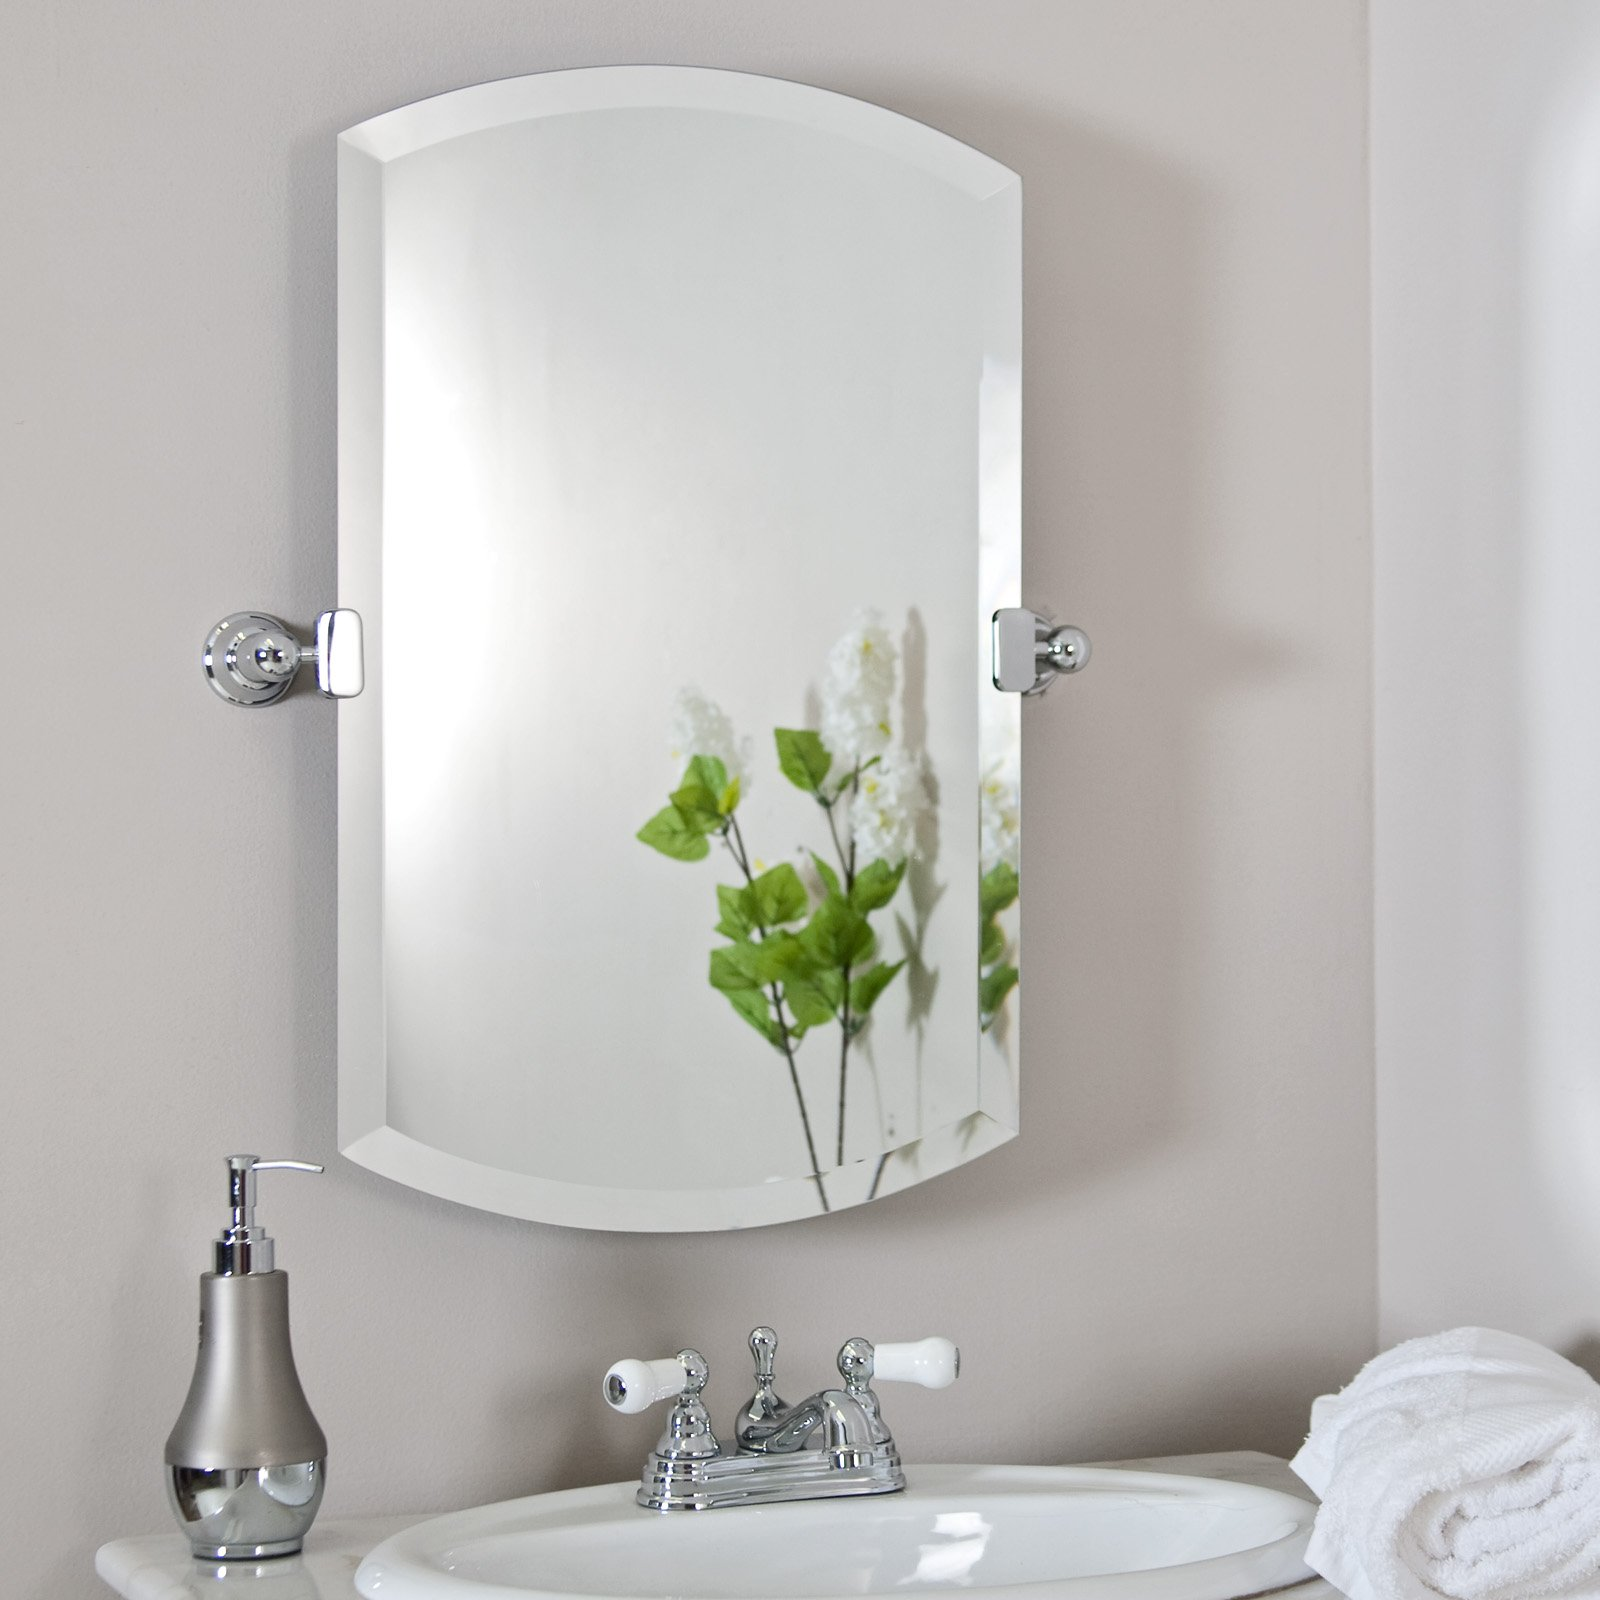 Brushed Nickel Bathroom Mirror as Sweet Wall Decoration | HomesFeed